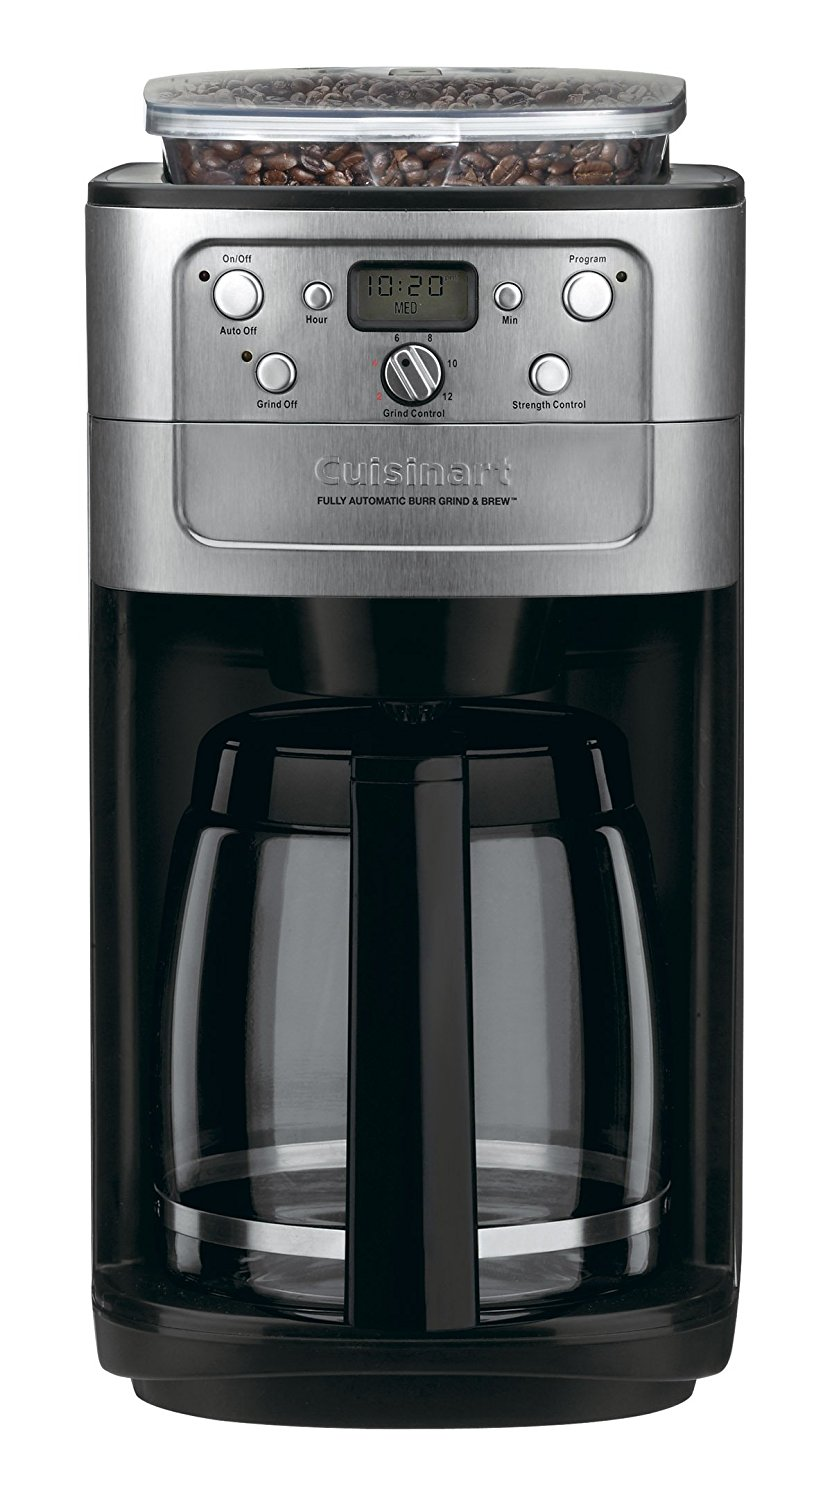 Gifts for Coffee Lovers: Cuisinart 12 Cup Coffee Maker